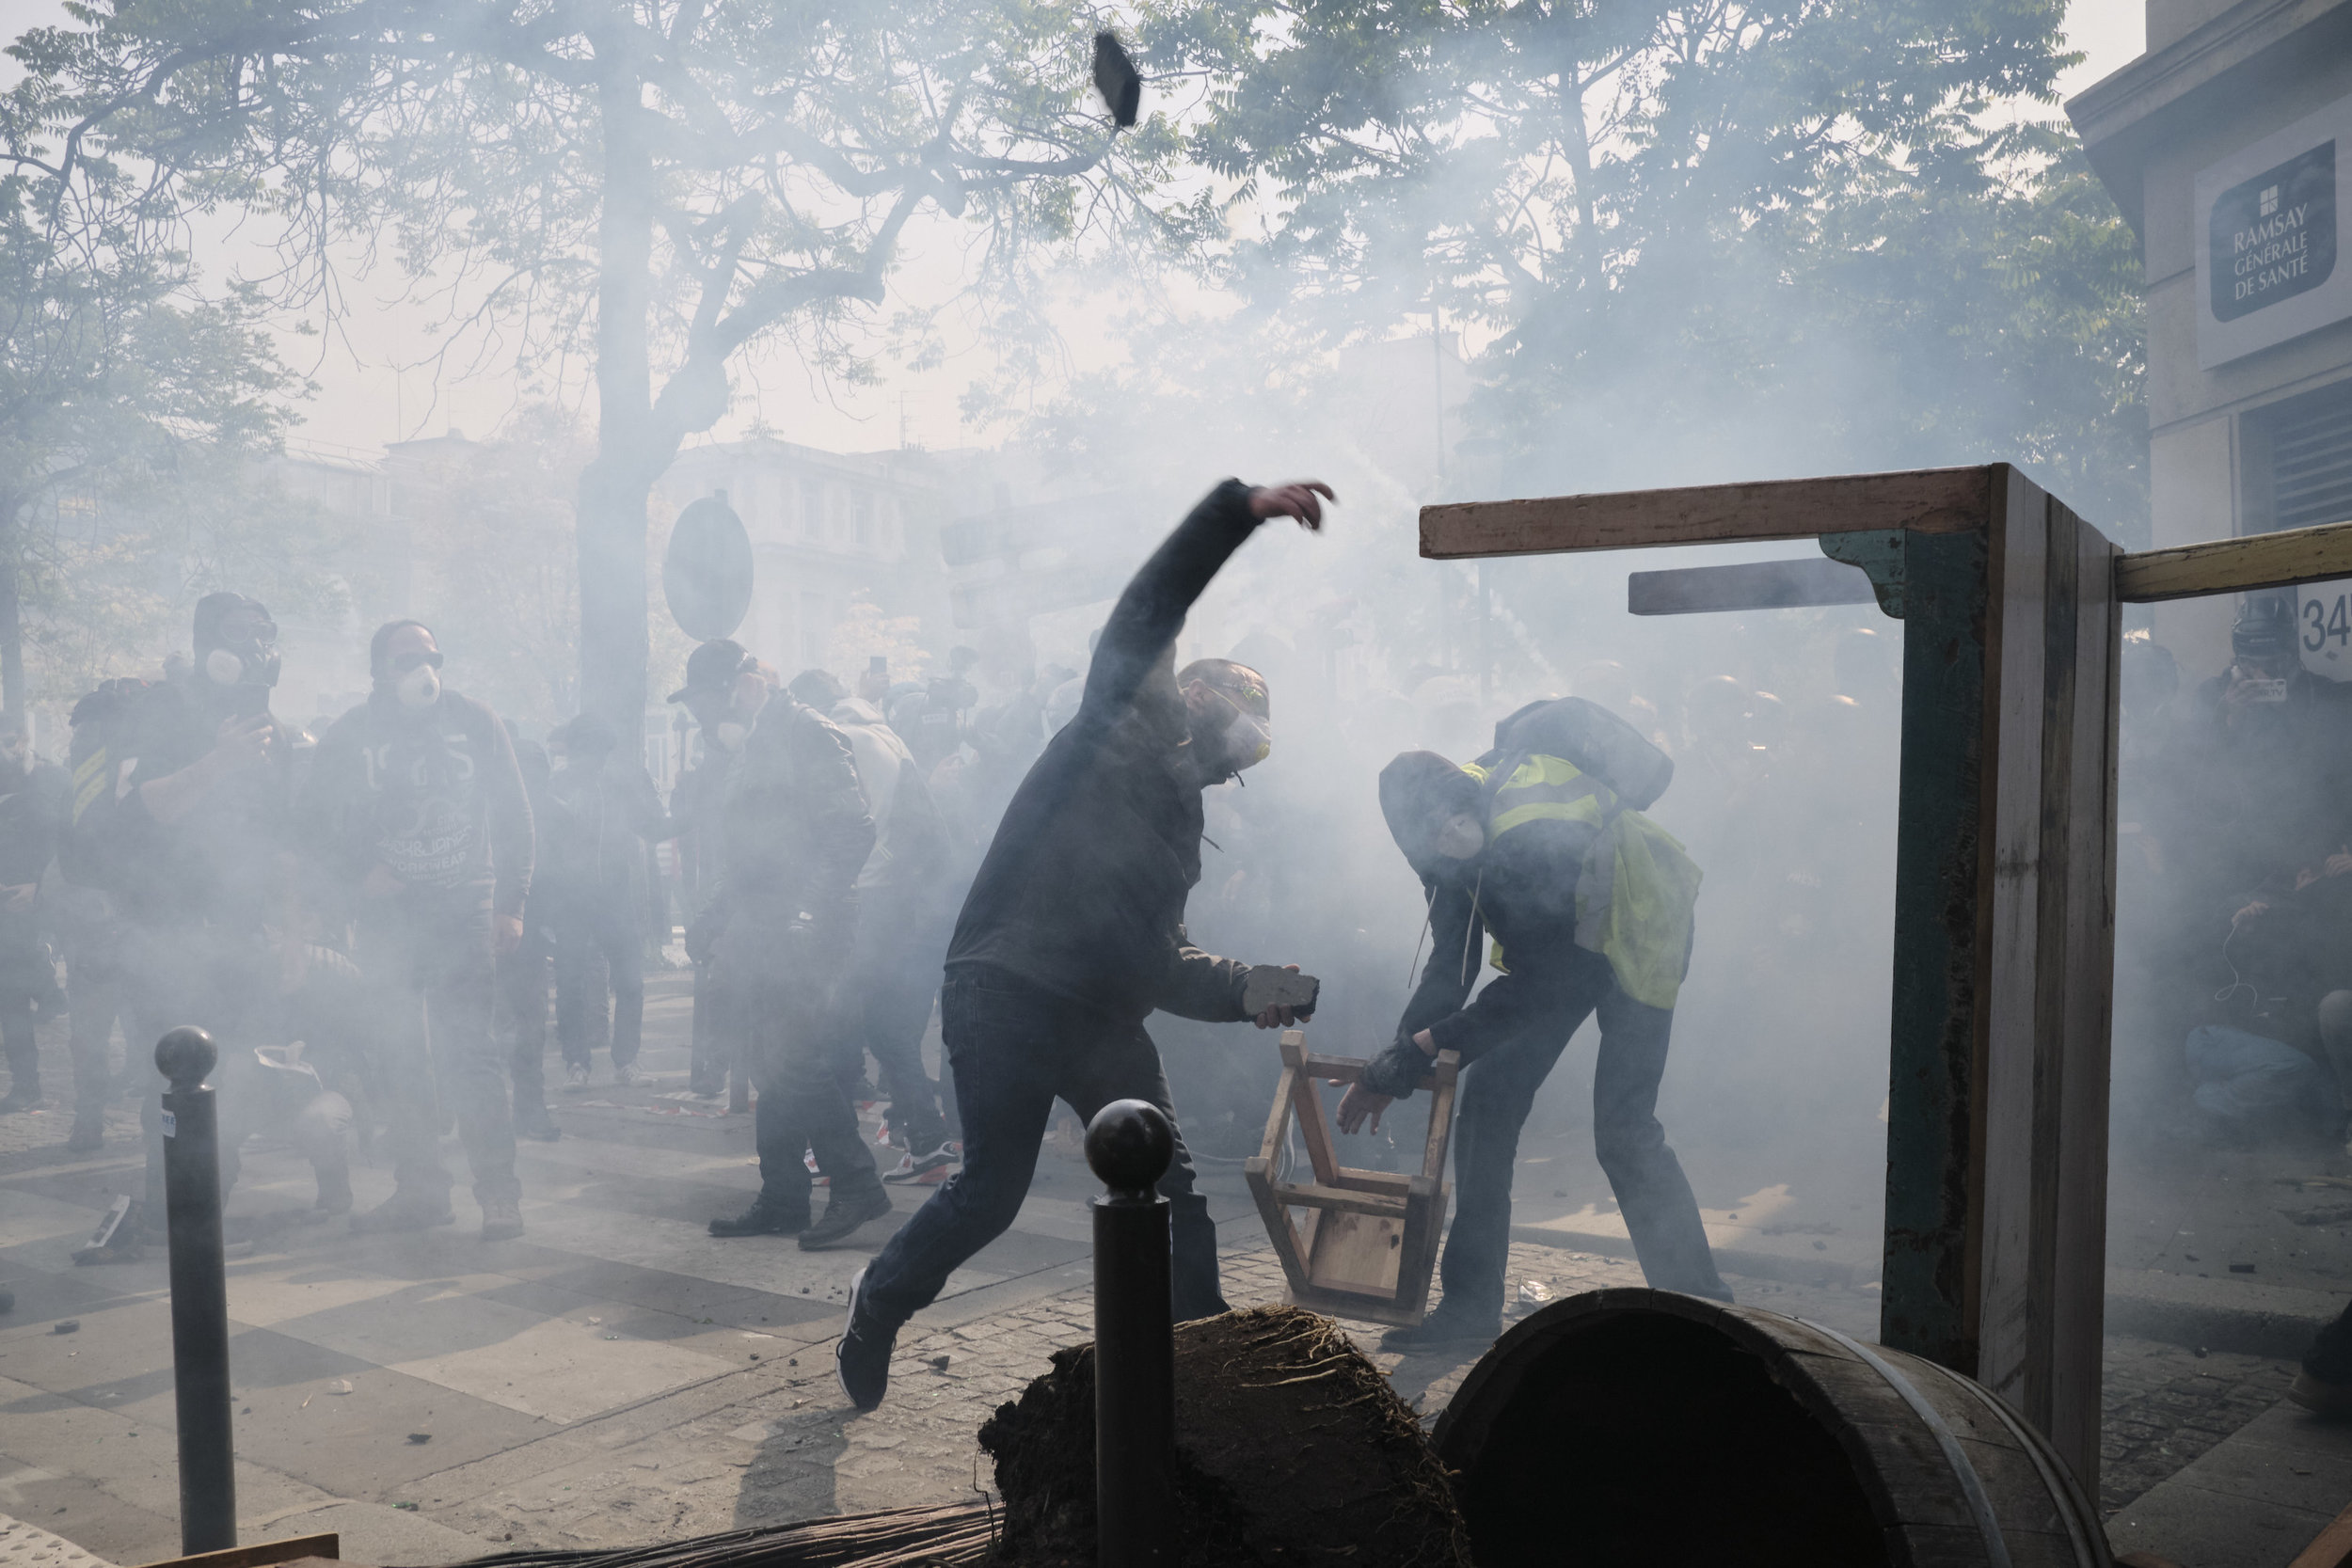 Protesters throwing rocks at the police during a violent confrontation at The Boulevard Arago.